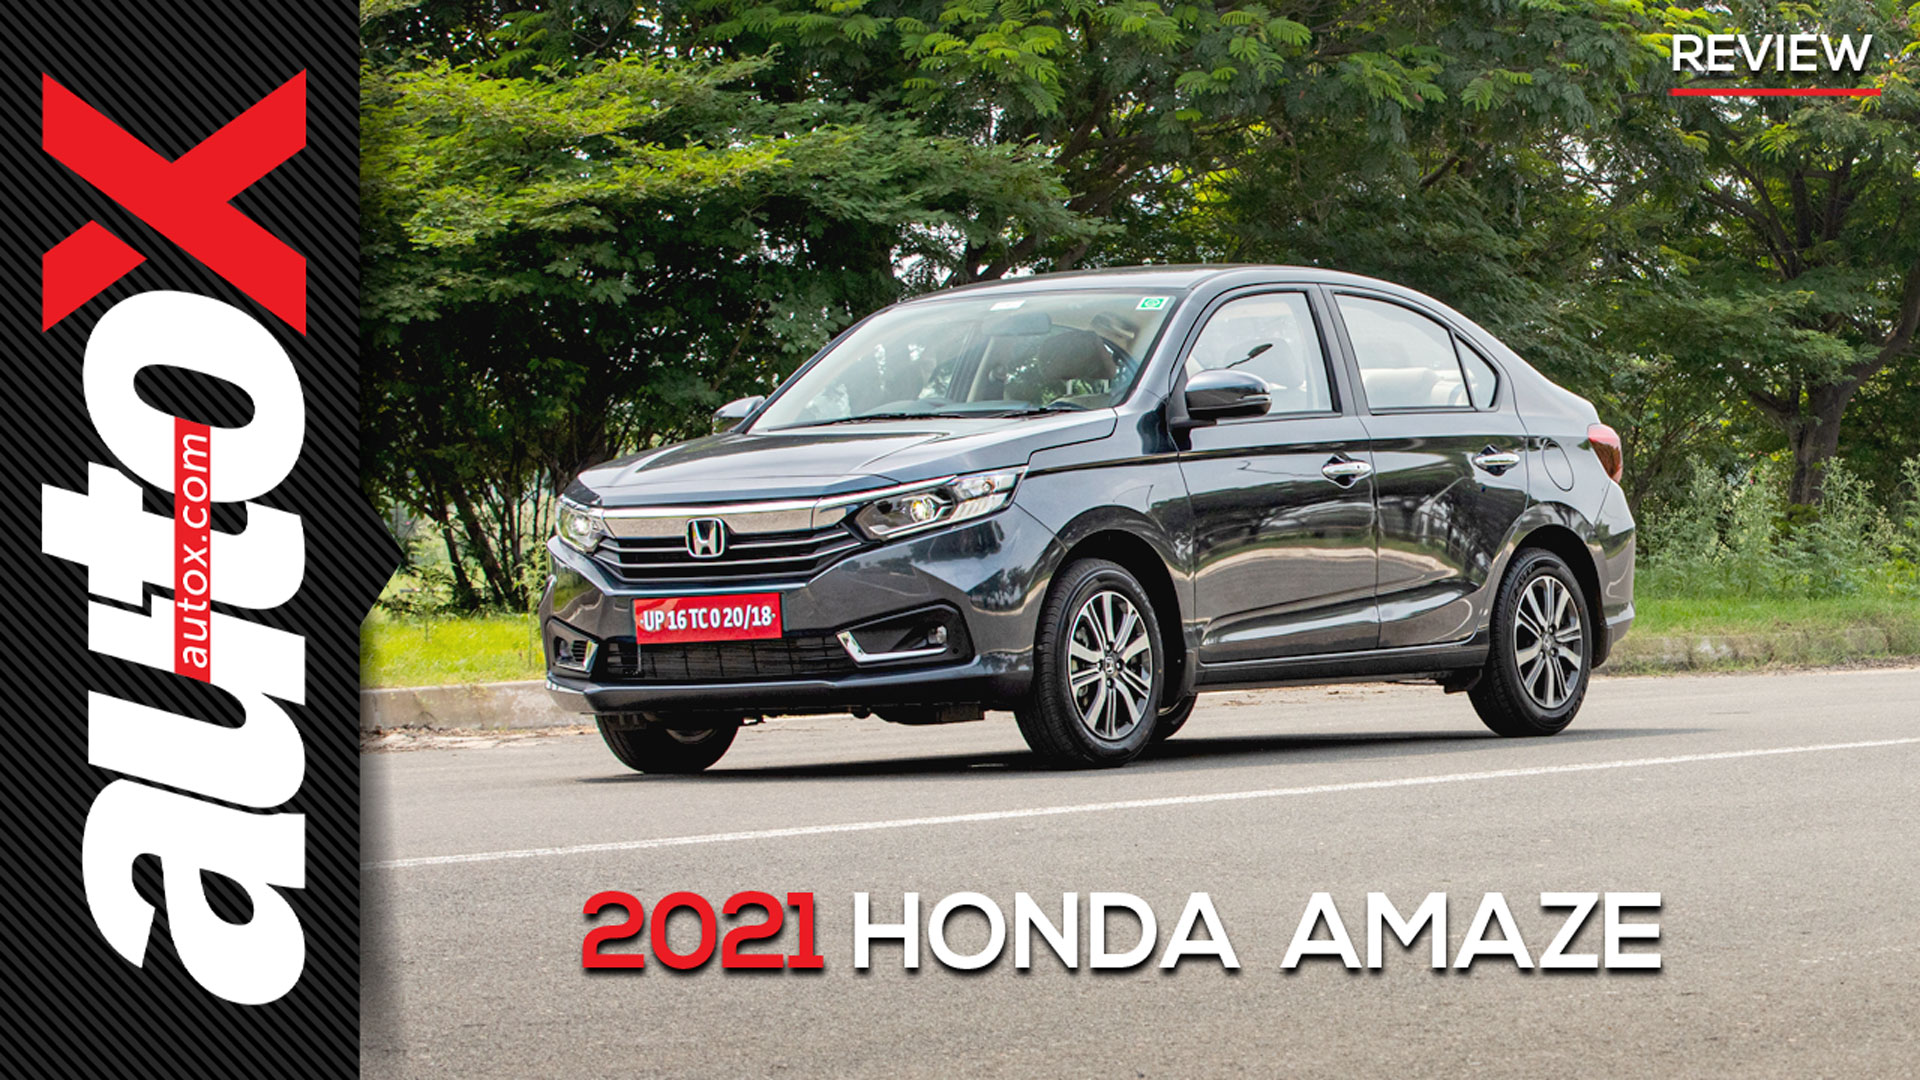 2021 Honda Amaze: Has the update made it more appealing?   Review   autoX